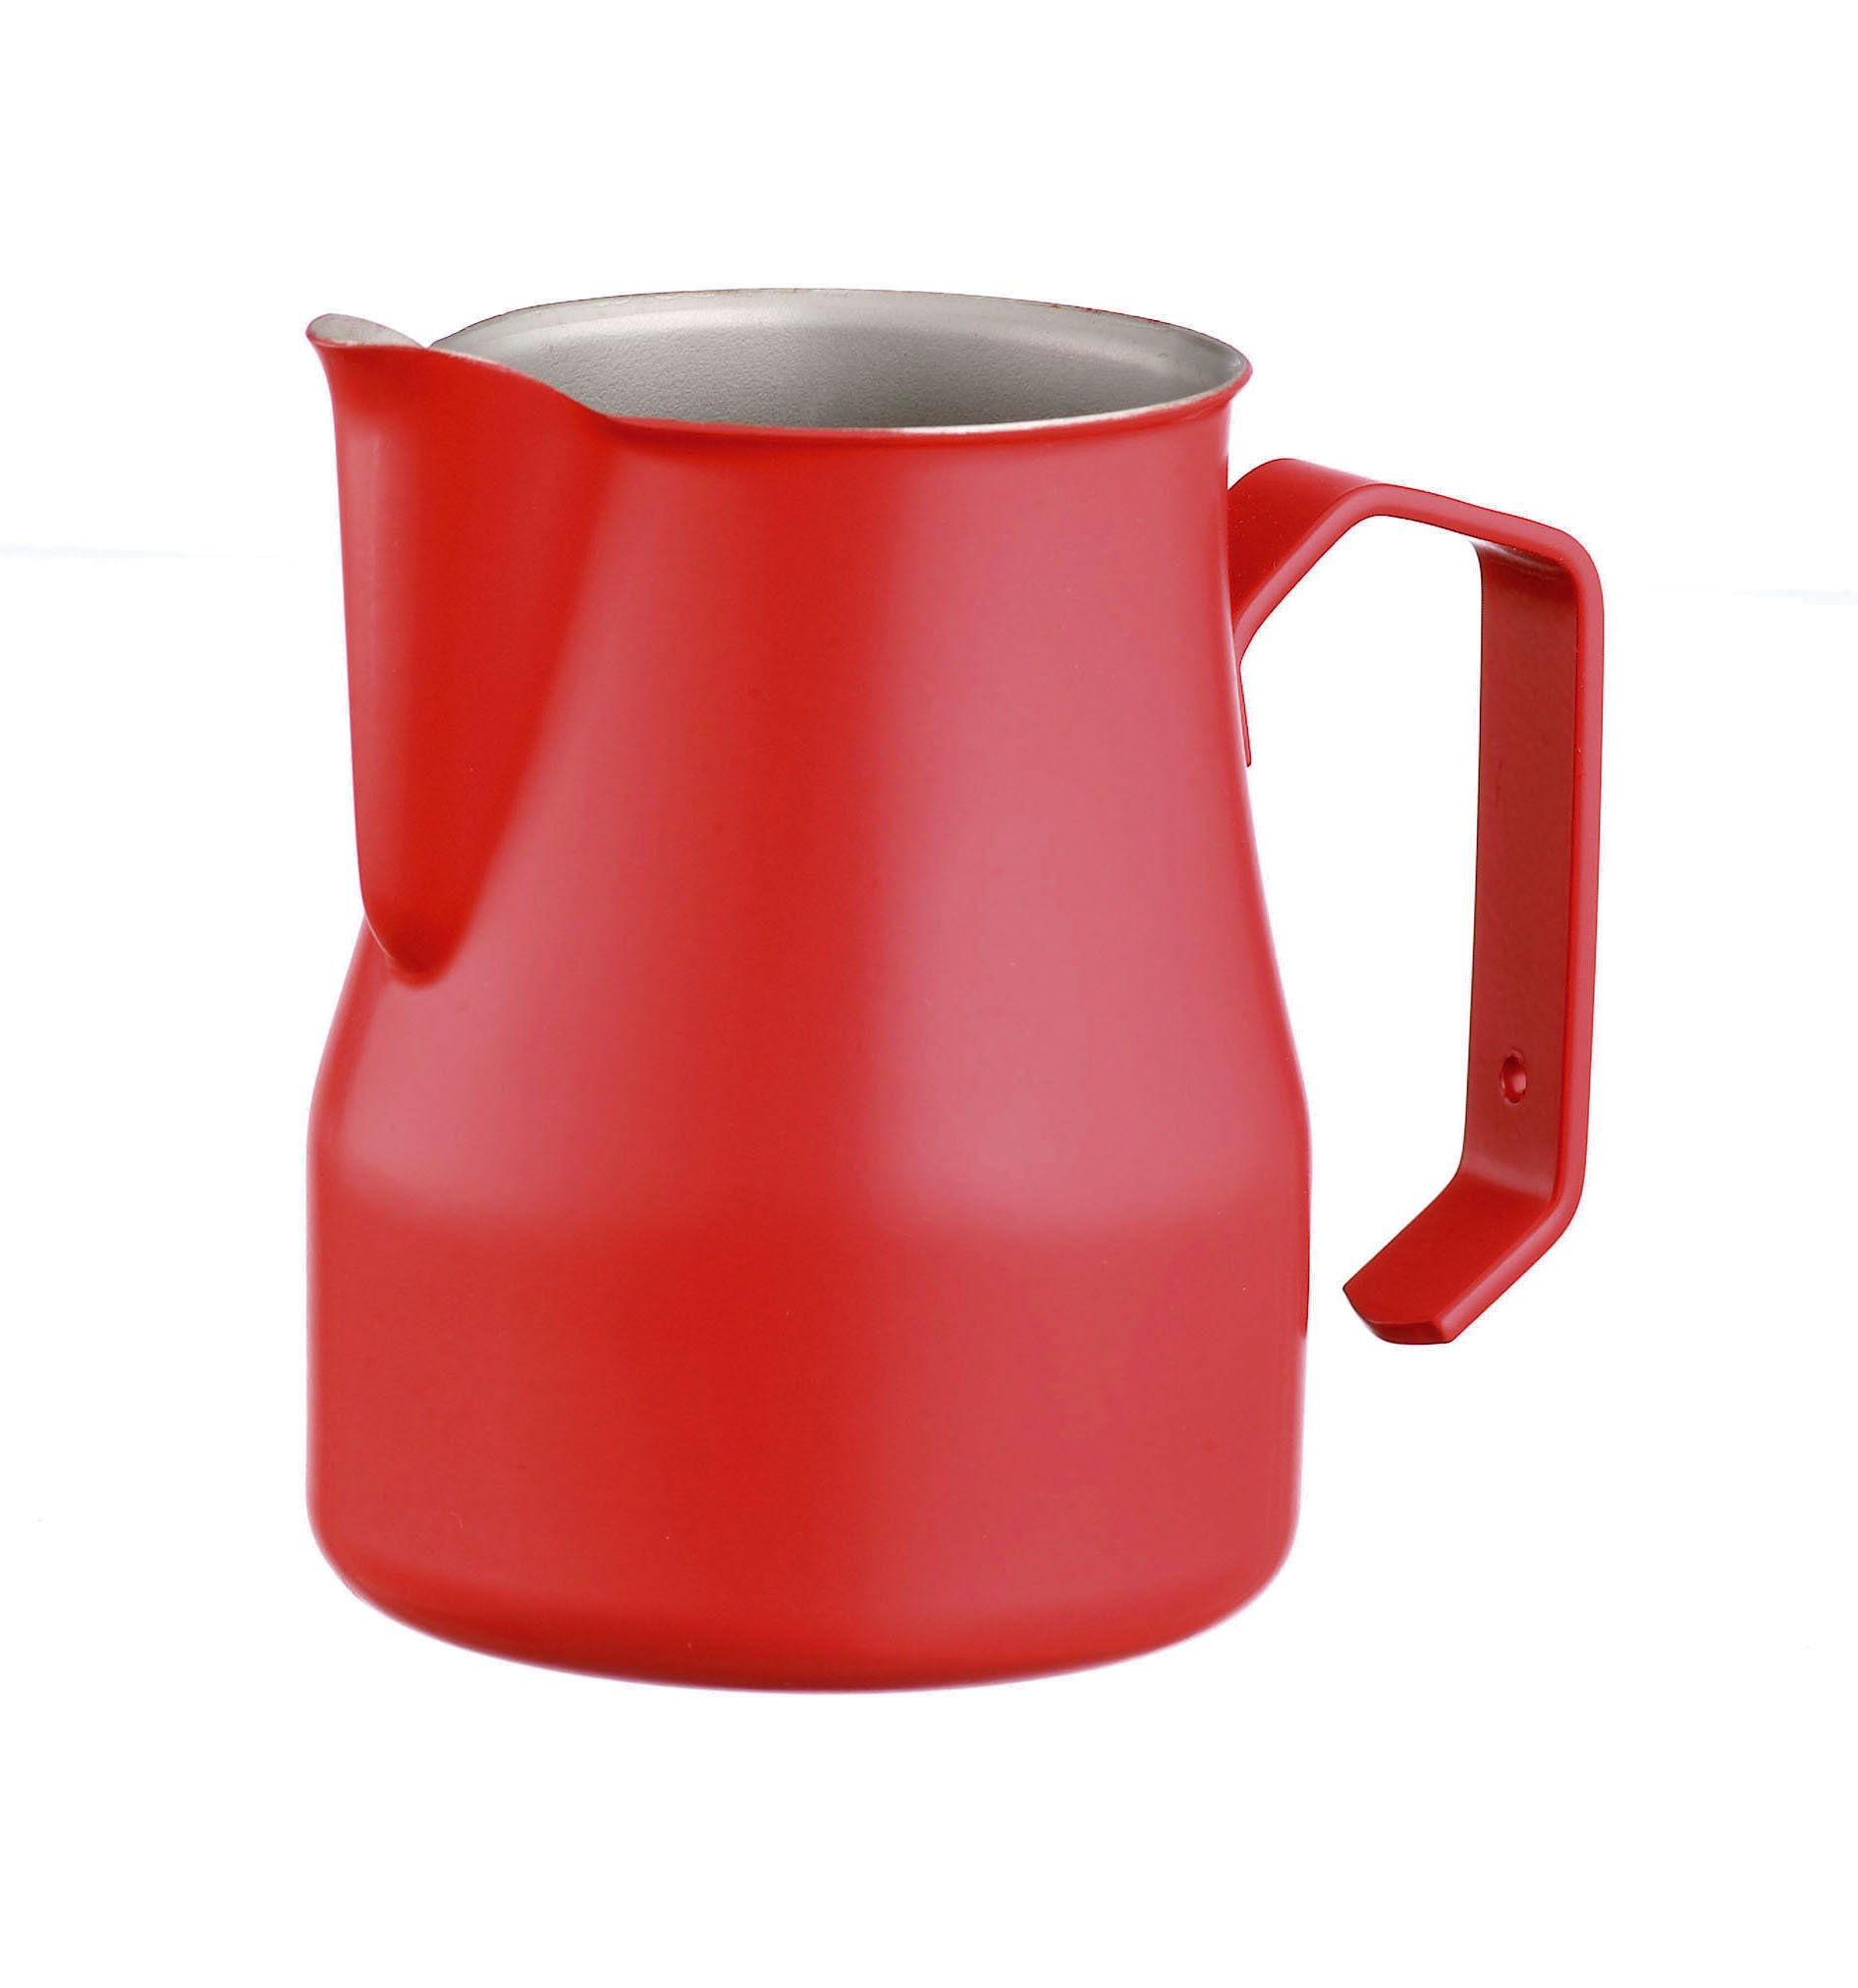 Motta 75cl Stainless Steel Professional Milk Pitcher, 25.4 Fluid Ounce, Red by Metallurgica Motta